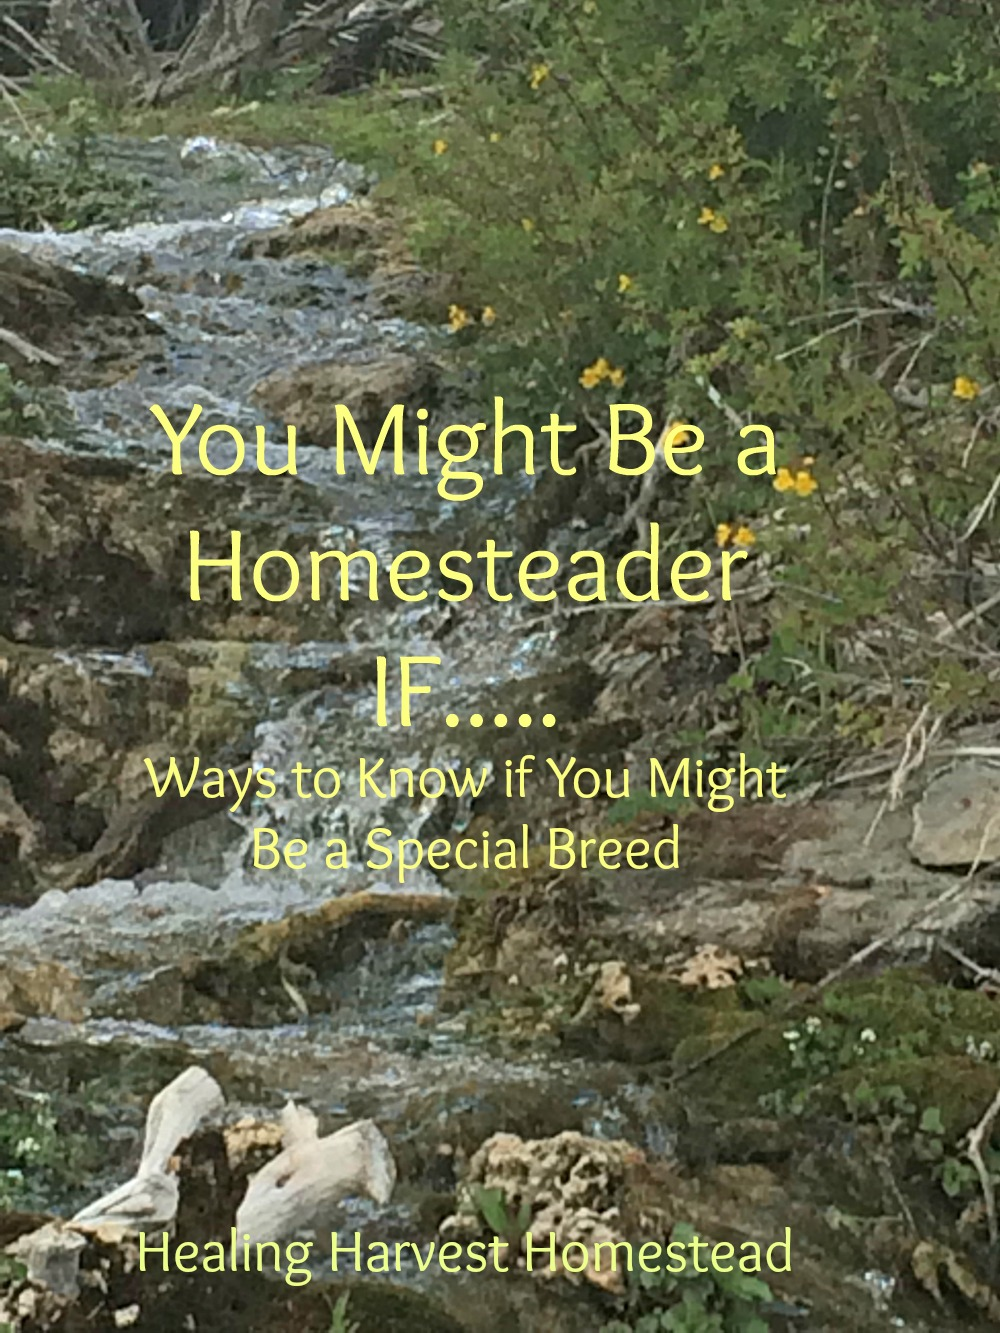 Check out the following list to see if you might be a homesteader!